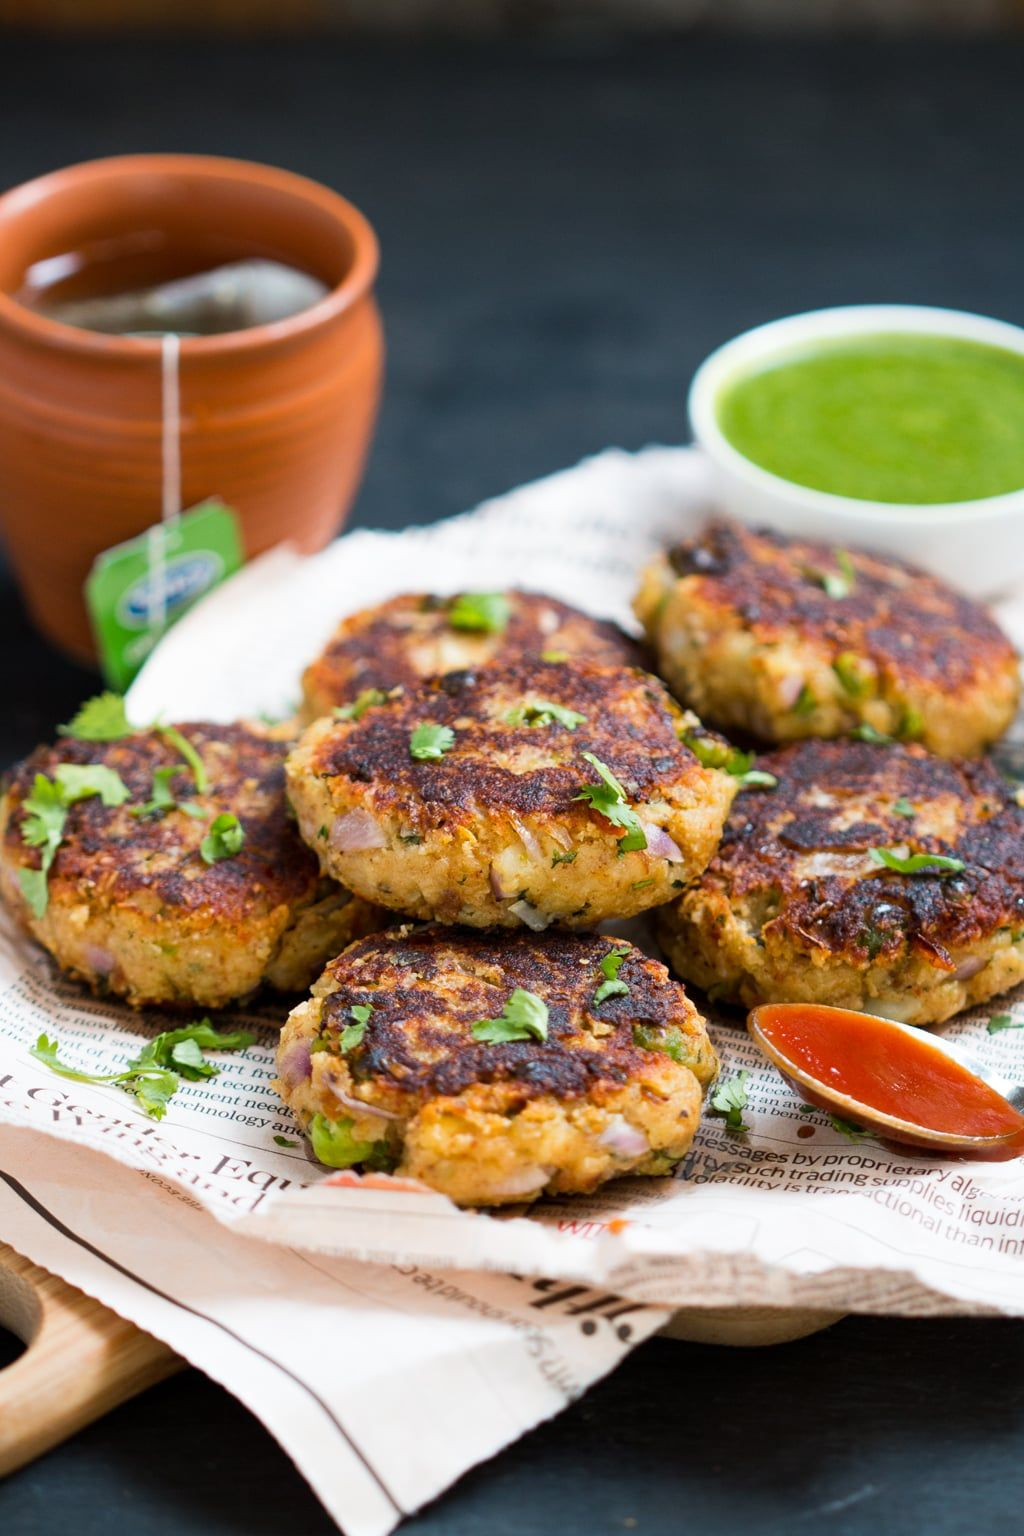 Healthy north indian style peas potato and paneer tikkis are the healthy north indian style peas potato and paneer tikkis are the perfect easy appetizer for chilly evenings or when you have guests over forumfinder Gallery